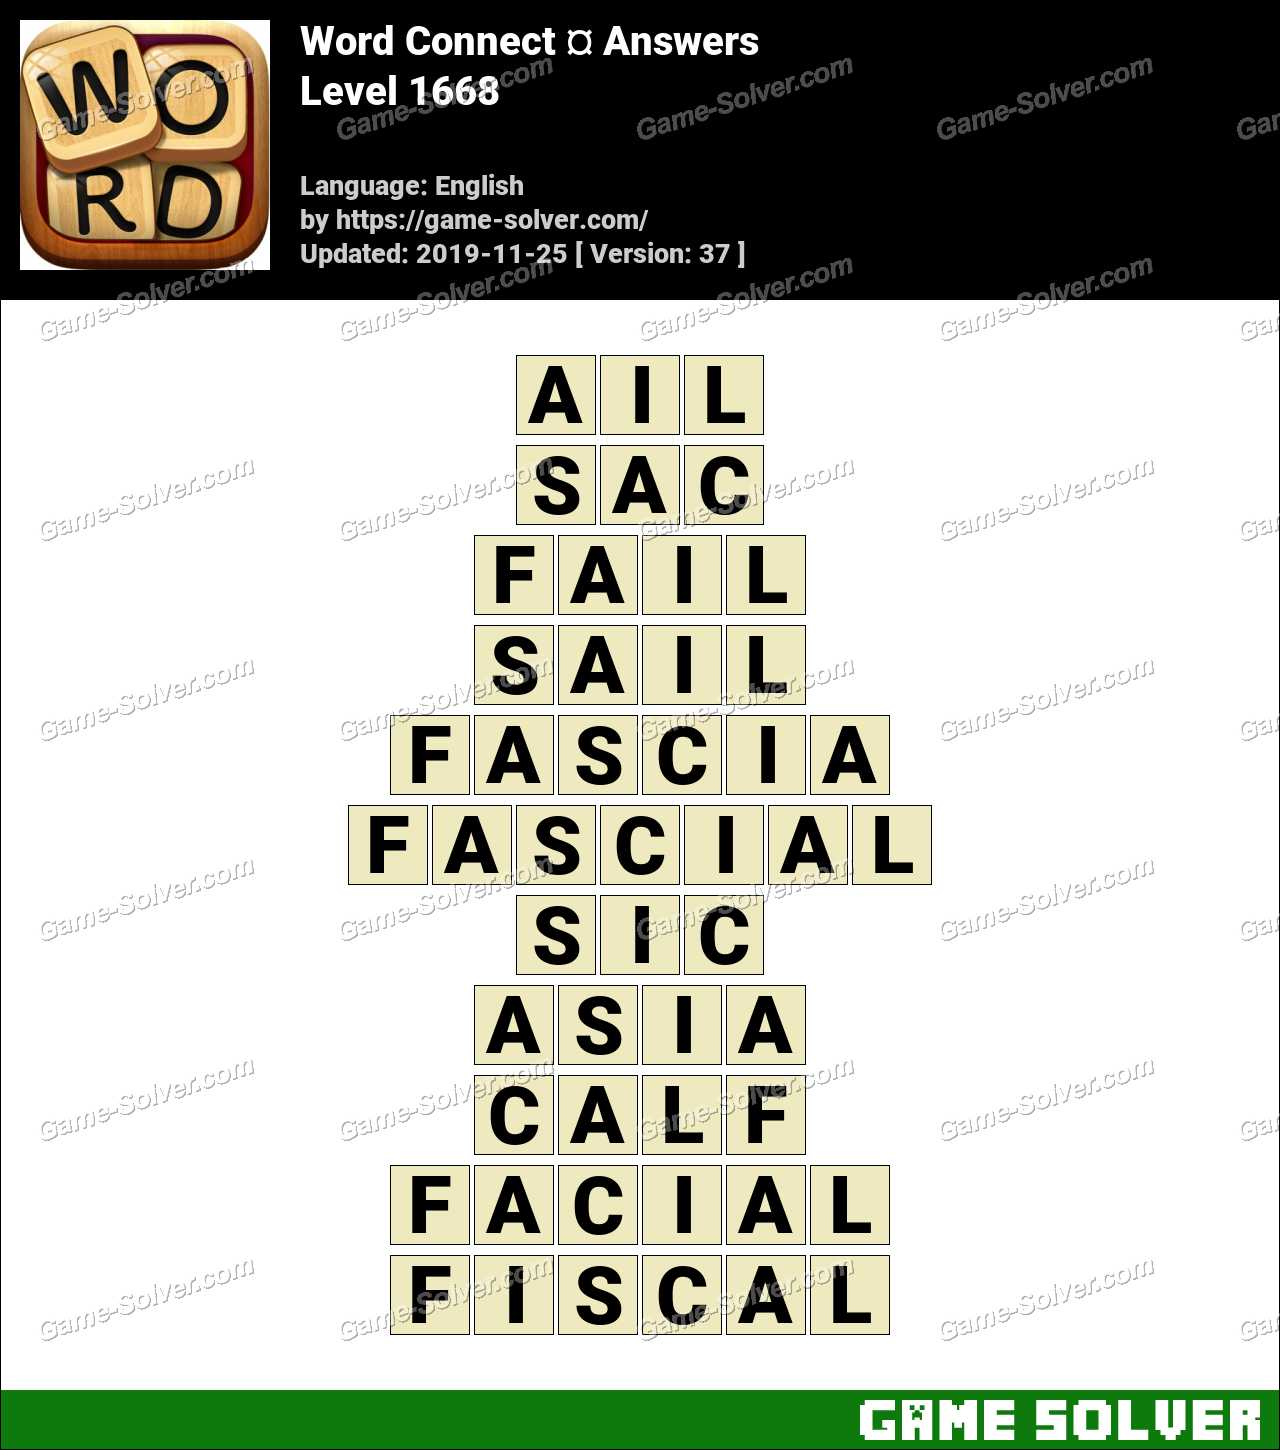 Word Connect Level 1668 Answers